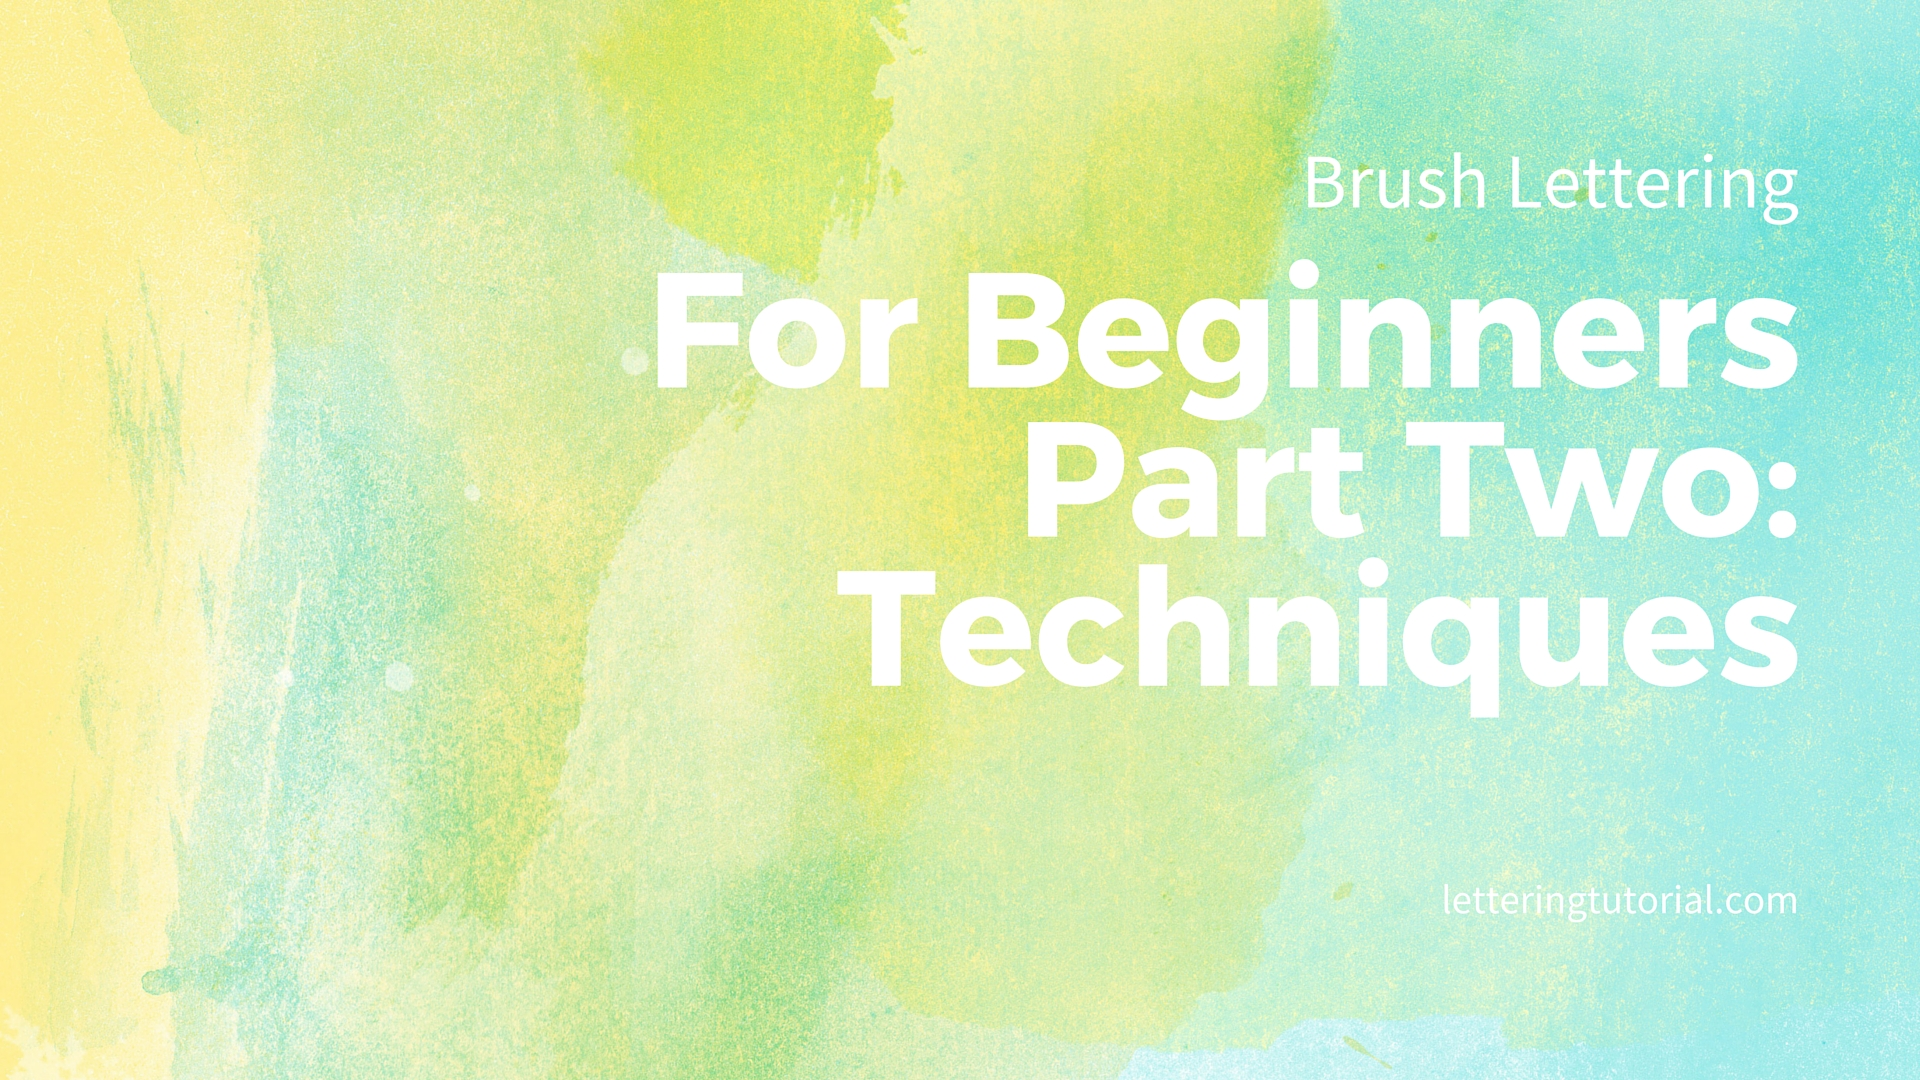 Brush Lettering For Beginners Part Two - Techniques